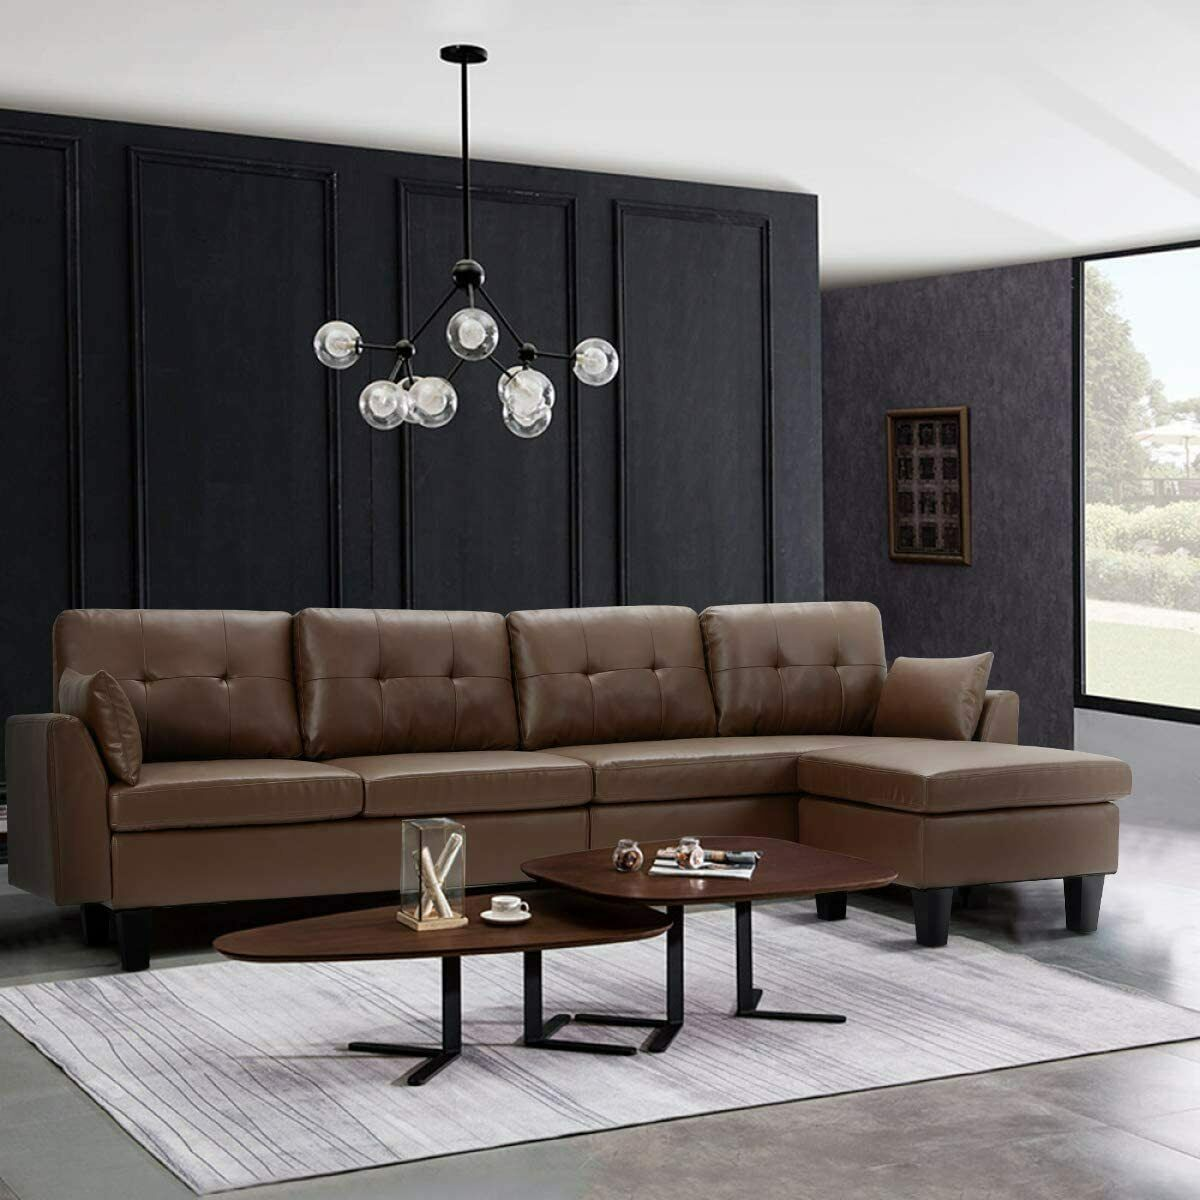 Esright 4-Seat Convertible Sectional Sofa Couch, L-Shaped Sofa Couch, Brown Furniture